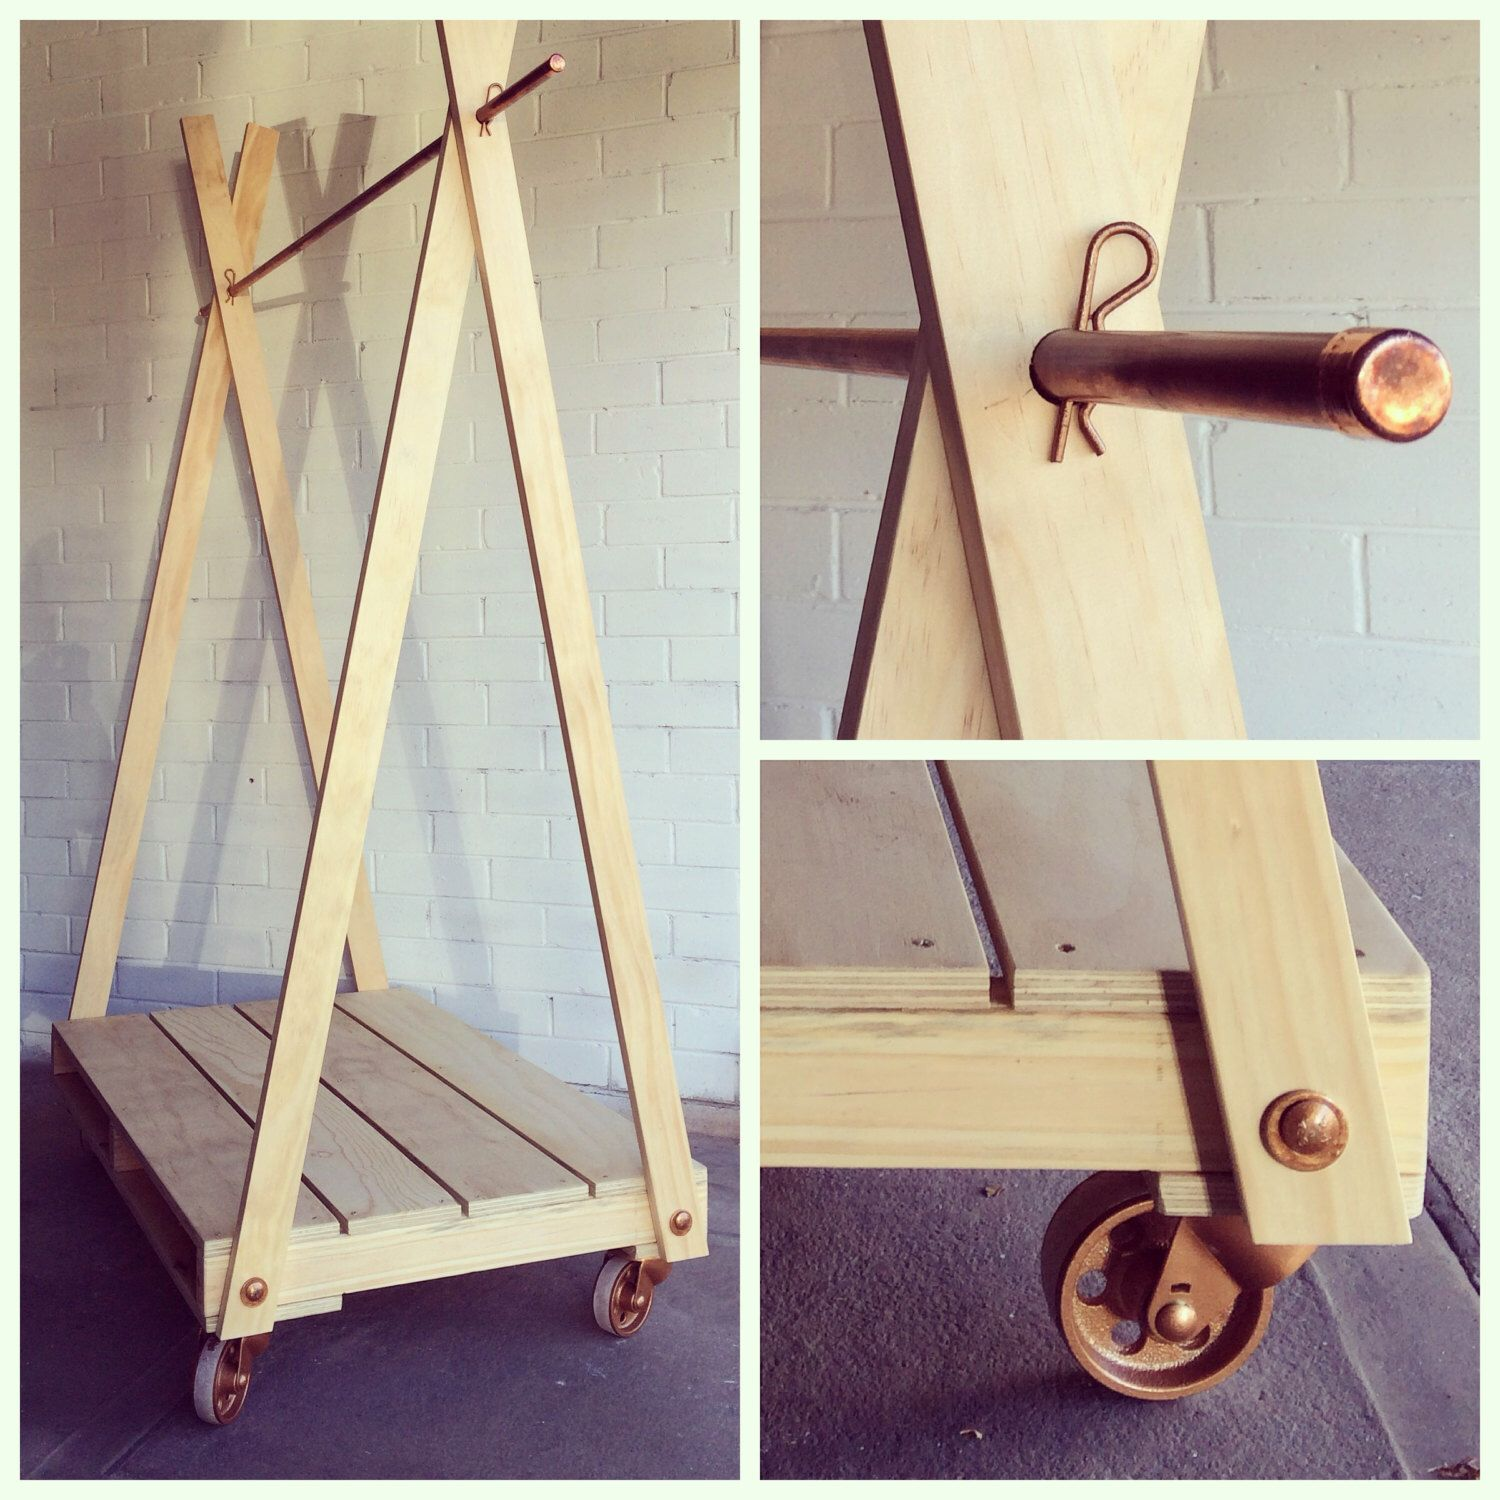 Handmade Natural Wood Clothes Rack Clothes Rail with 3 Shelves